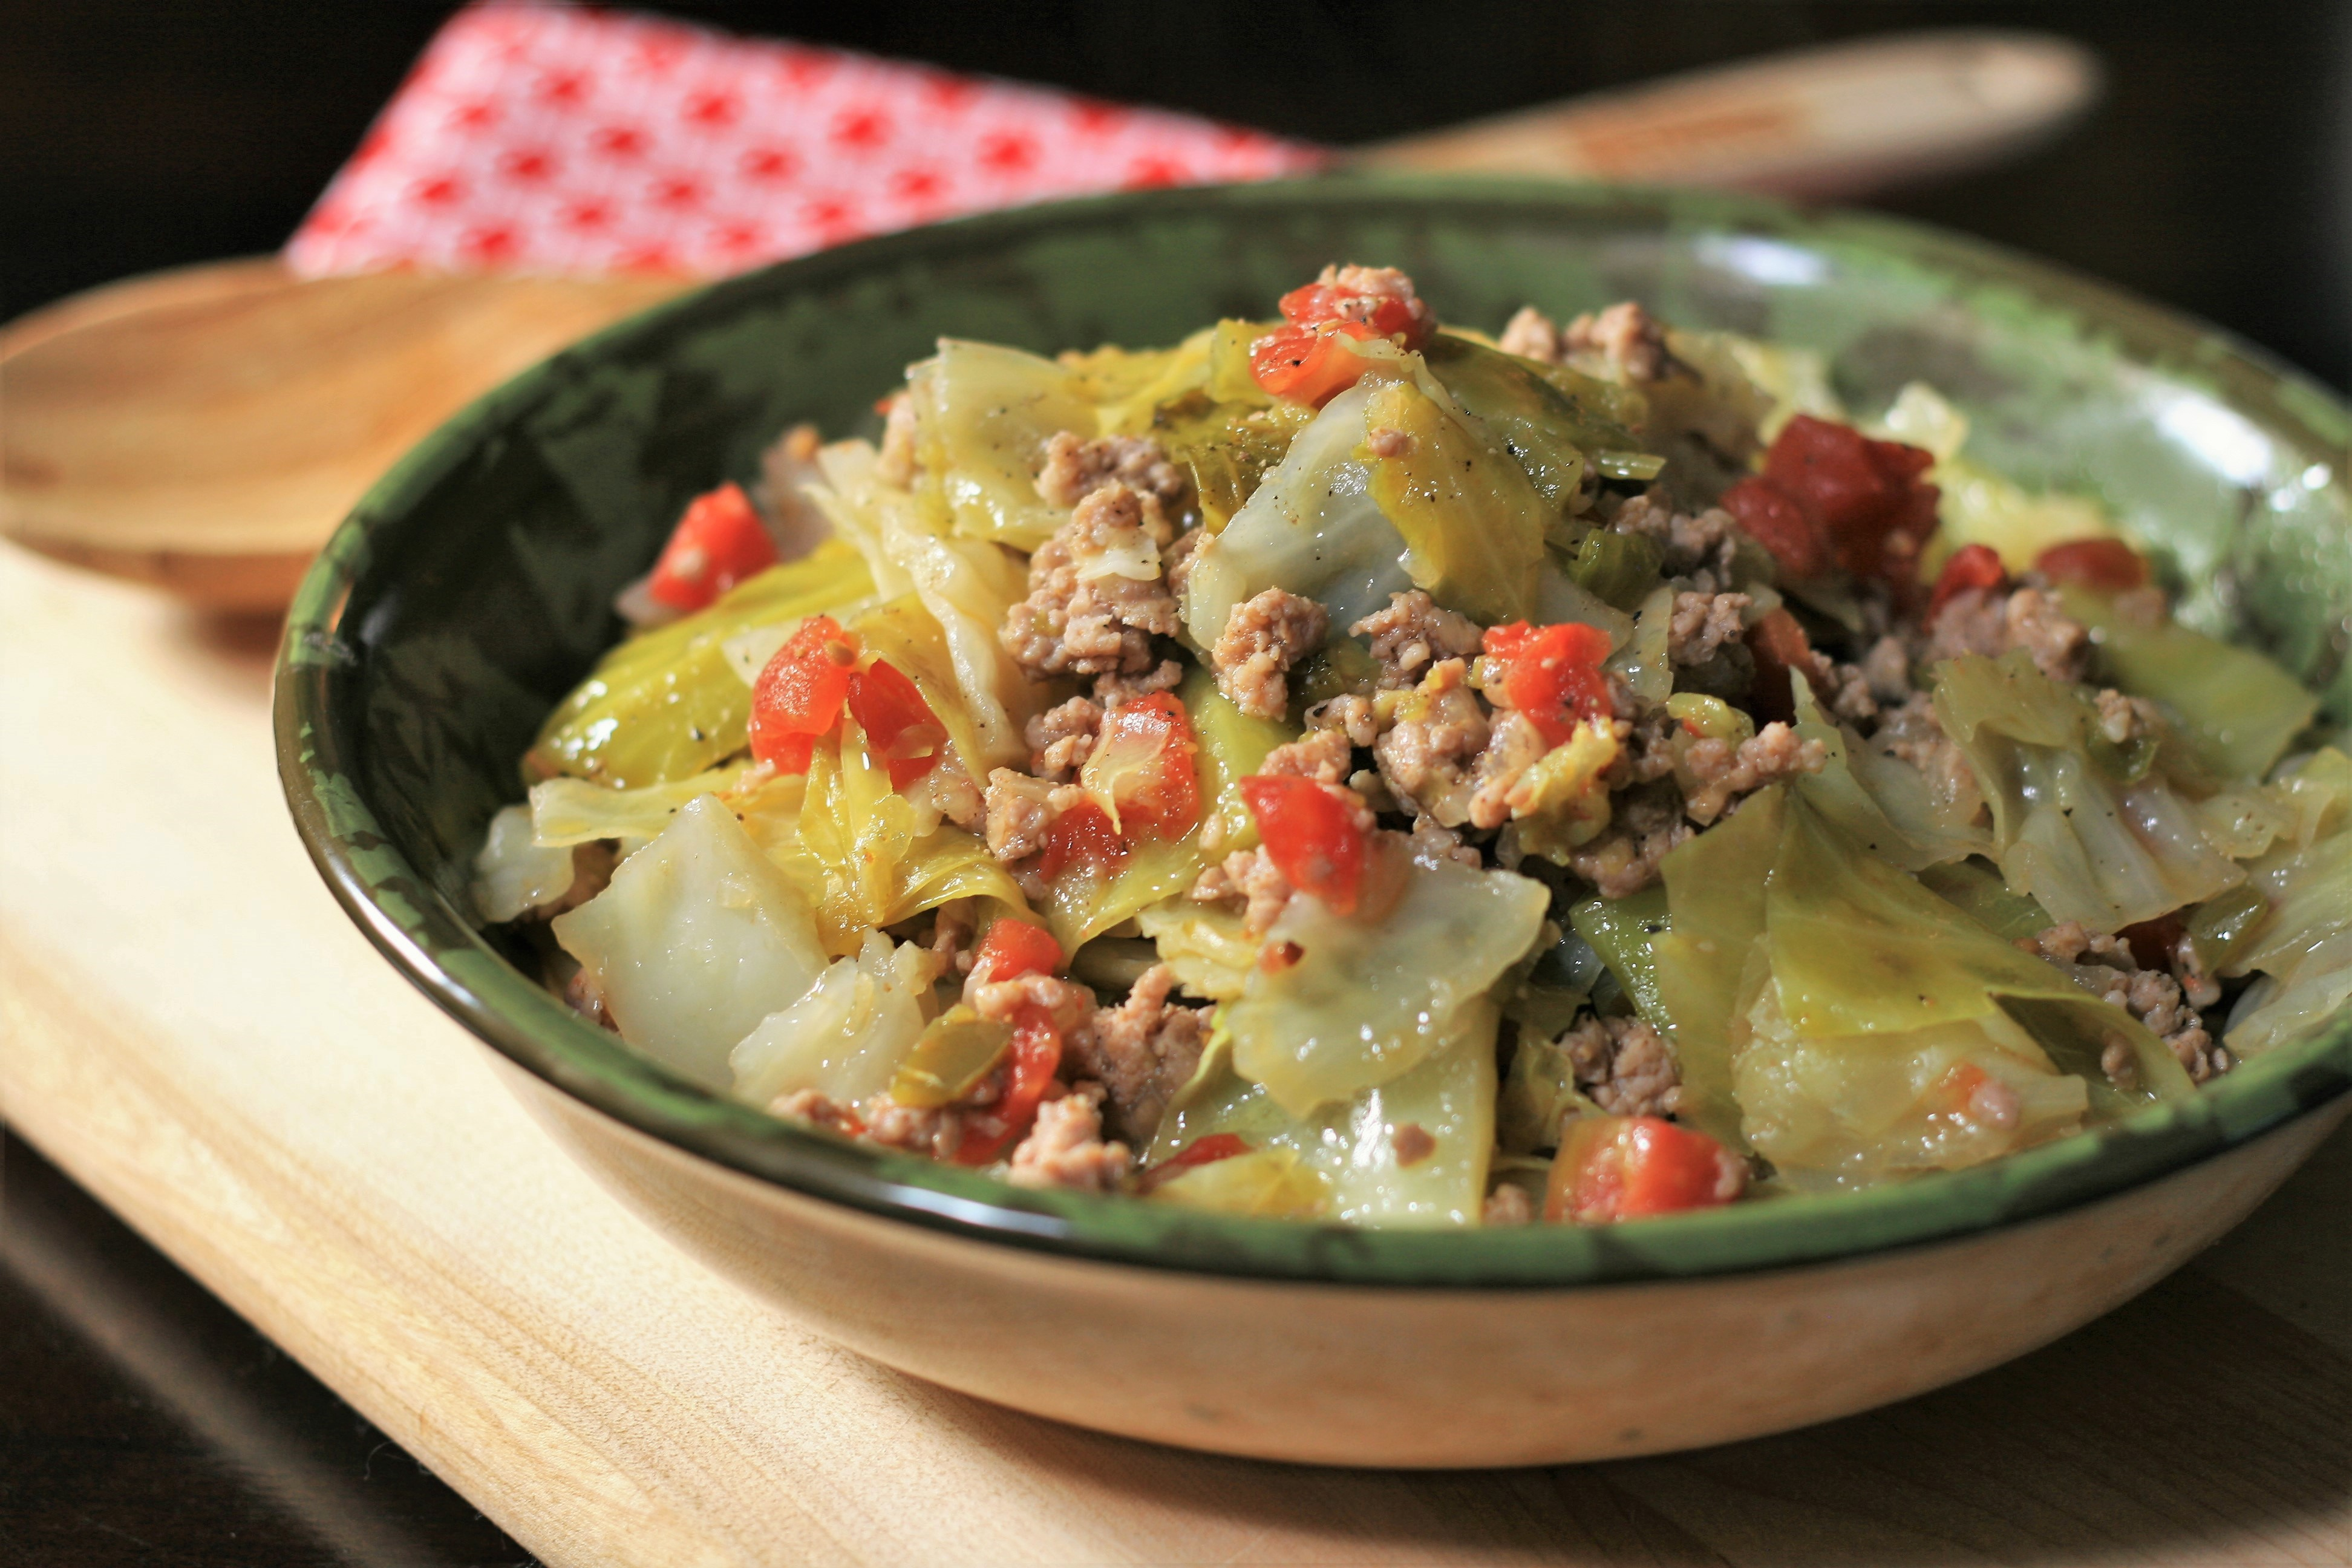 """Ready in 40 Minutes. This hearty, one-pot meal combines Creole-seasoned ground pork (or beef) with garlic, onions, green peppers, diced tomatoes with green chile peppers, and a whole head of roughly chopped cabbage. """"Perfectly seasoned with just a hint of heat,"""" says France C. """"A great one pot meal for a busy night!"""